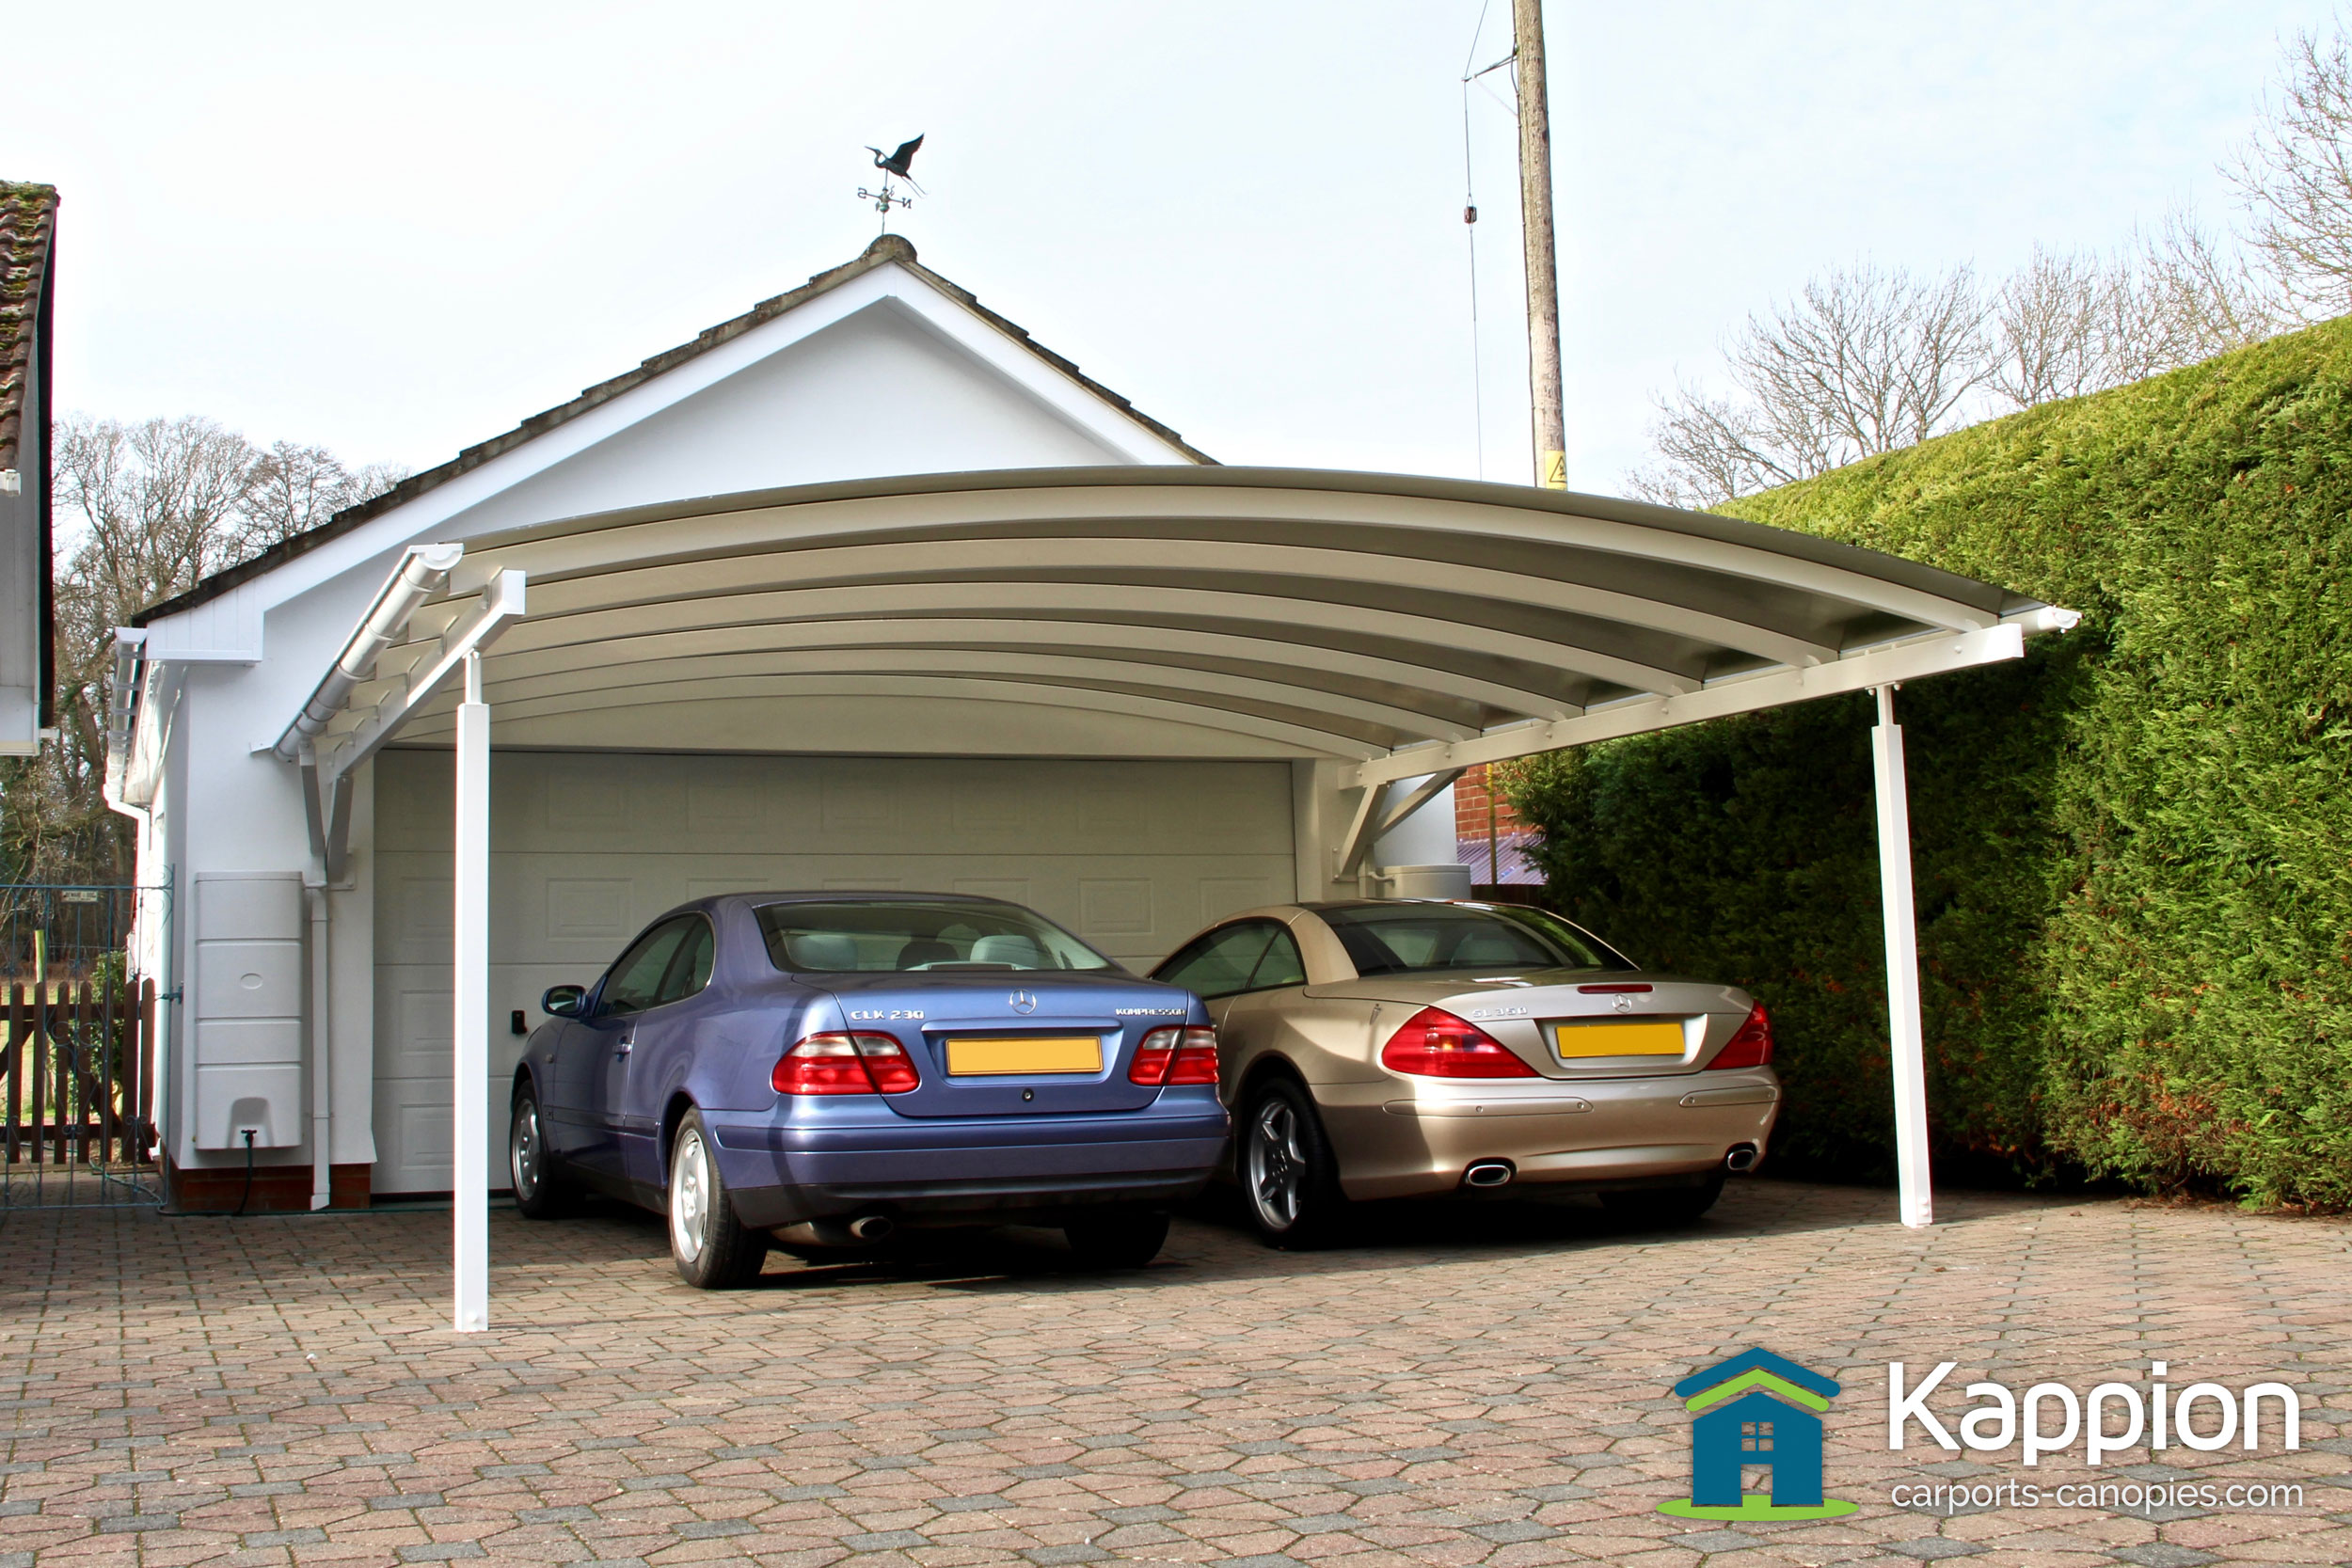 double carport canopy installed in salisbury kappion carports canopies. Black Bedroom Furniture Sets. Home Design Ideas